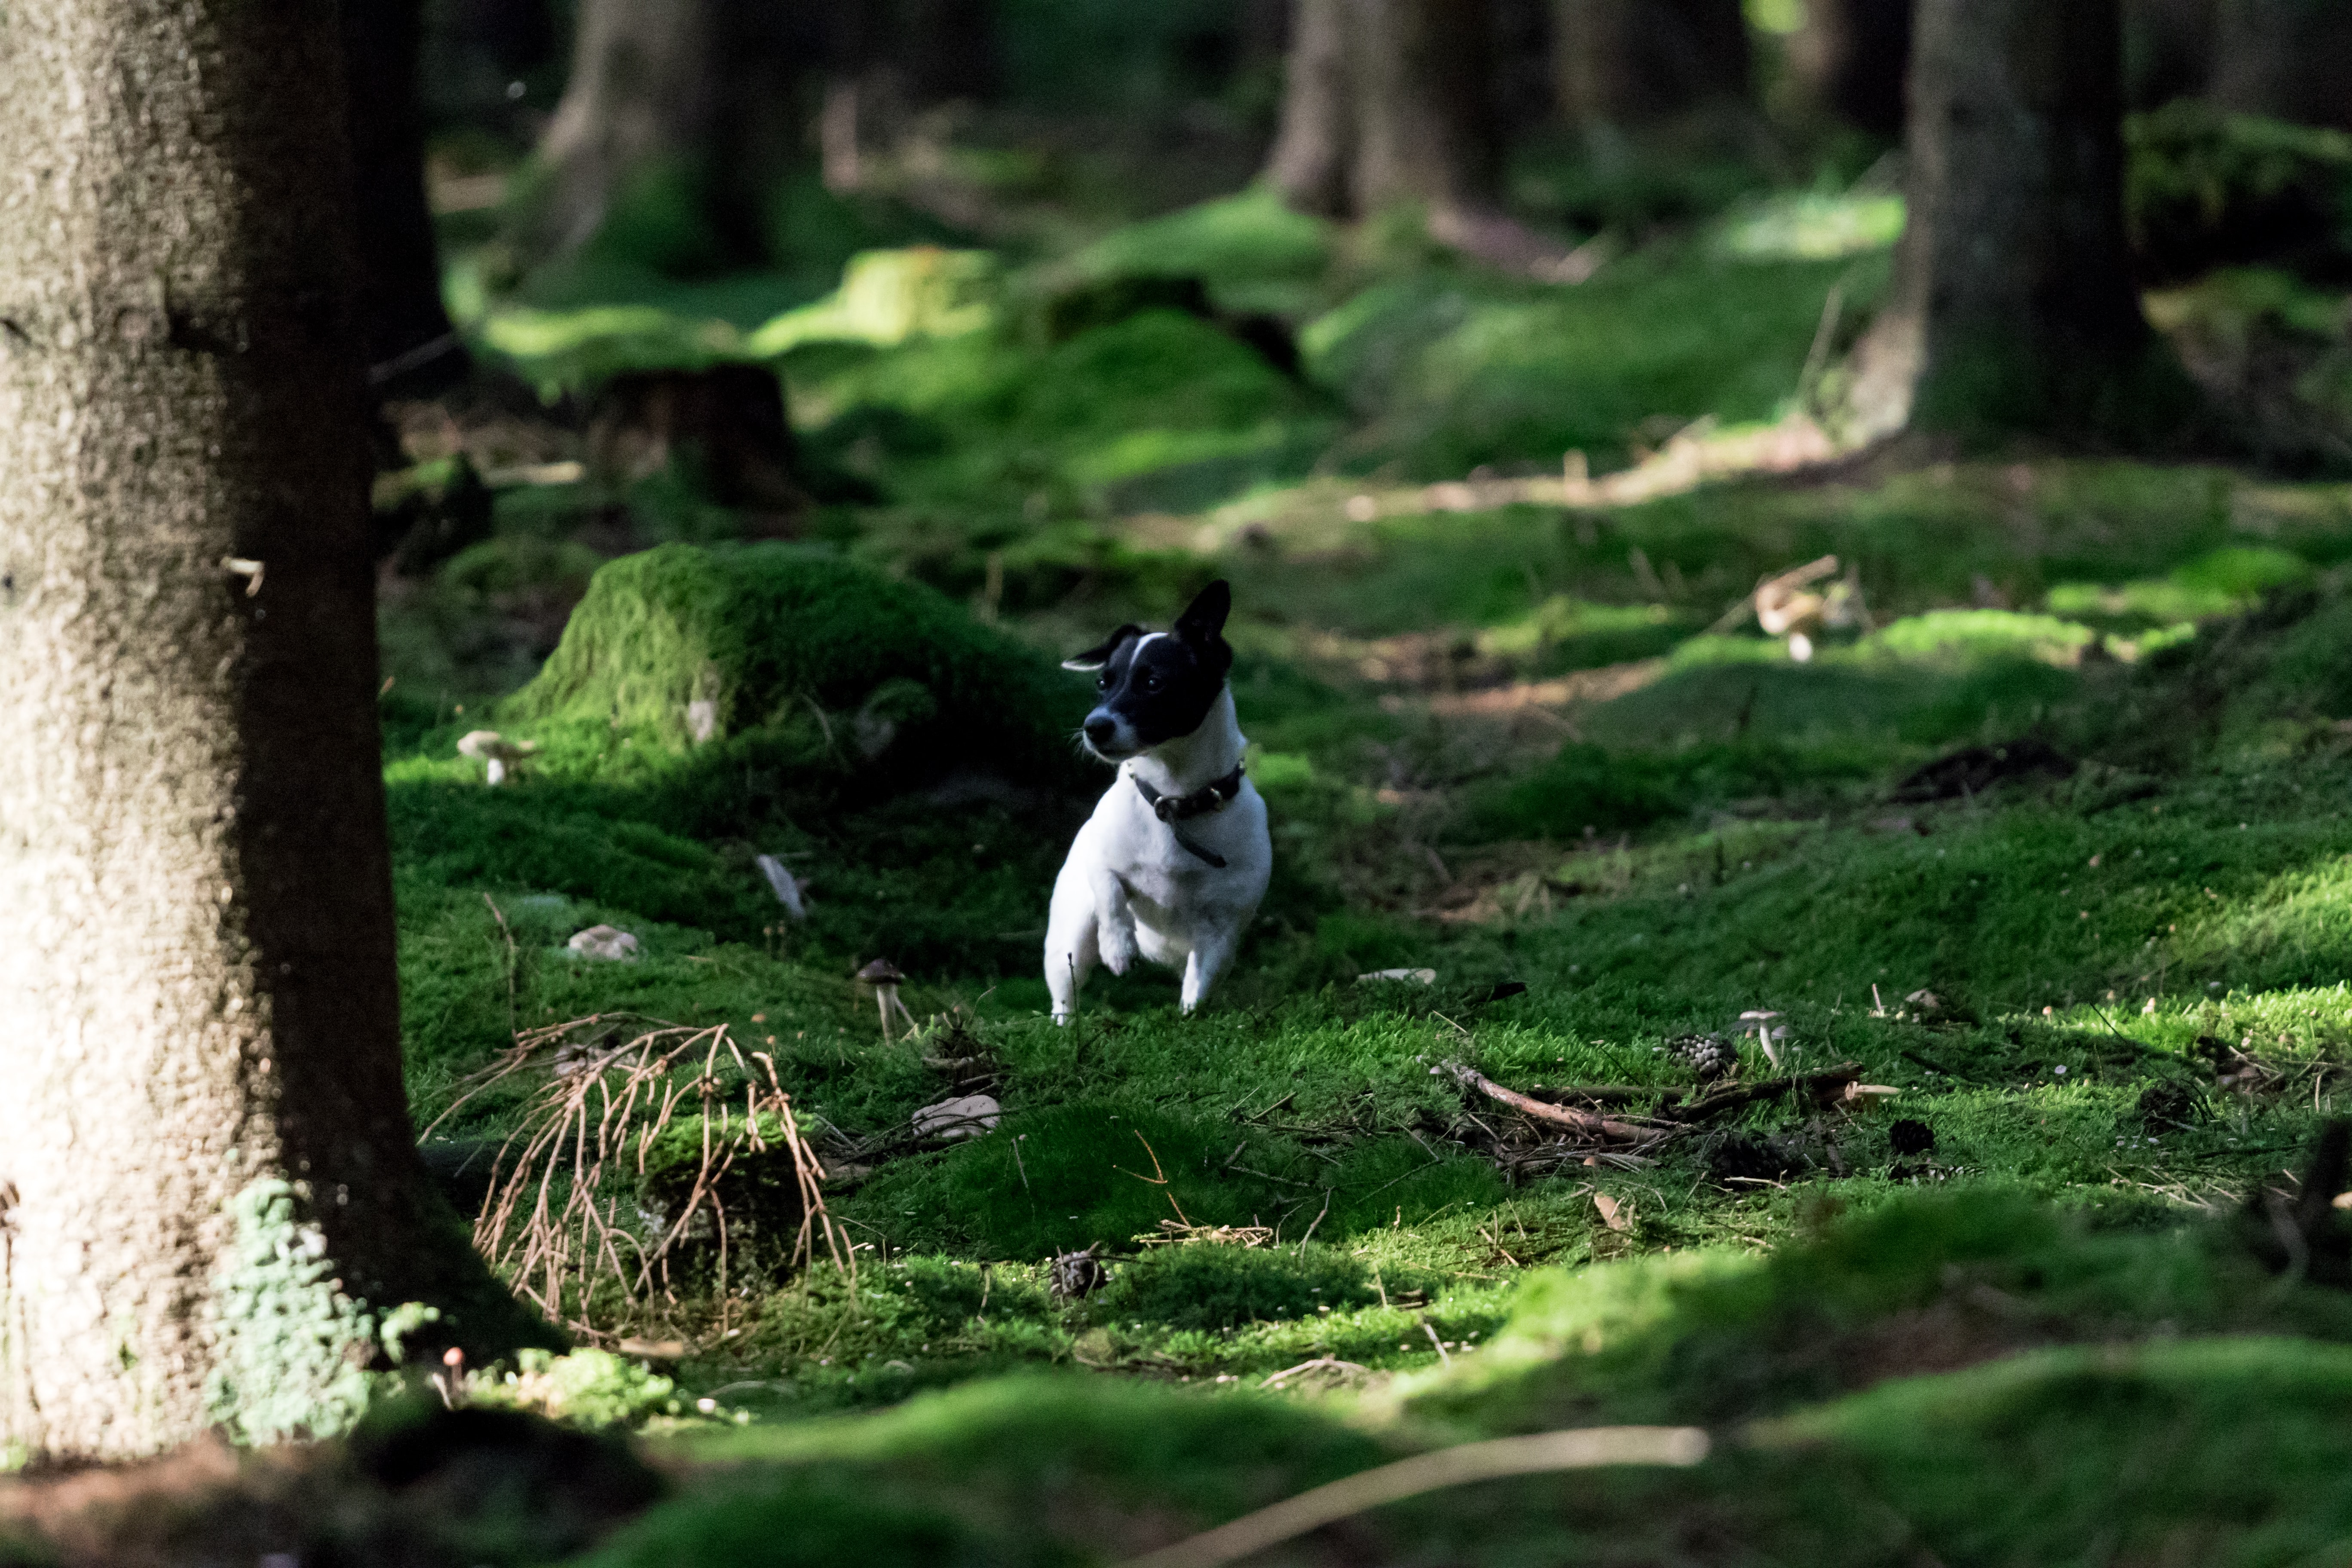 white and black dog on grass field between trees at daytime